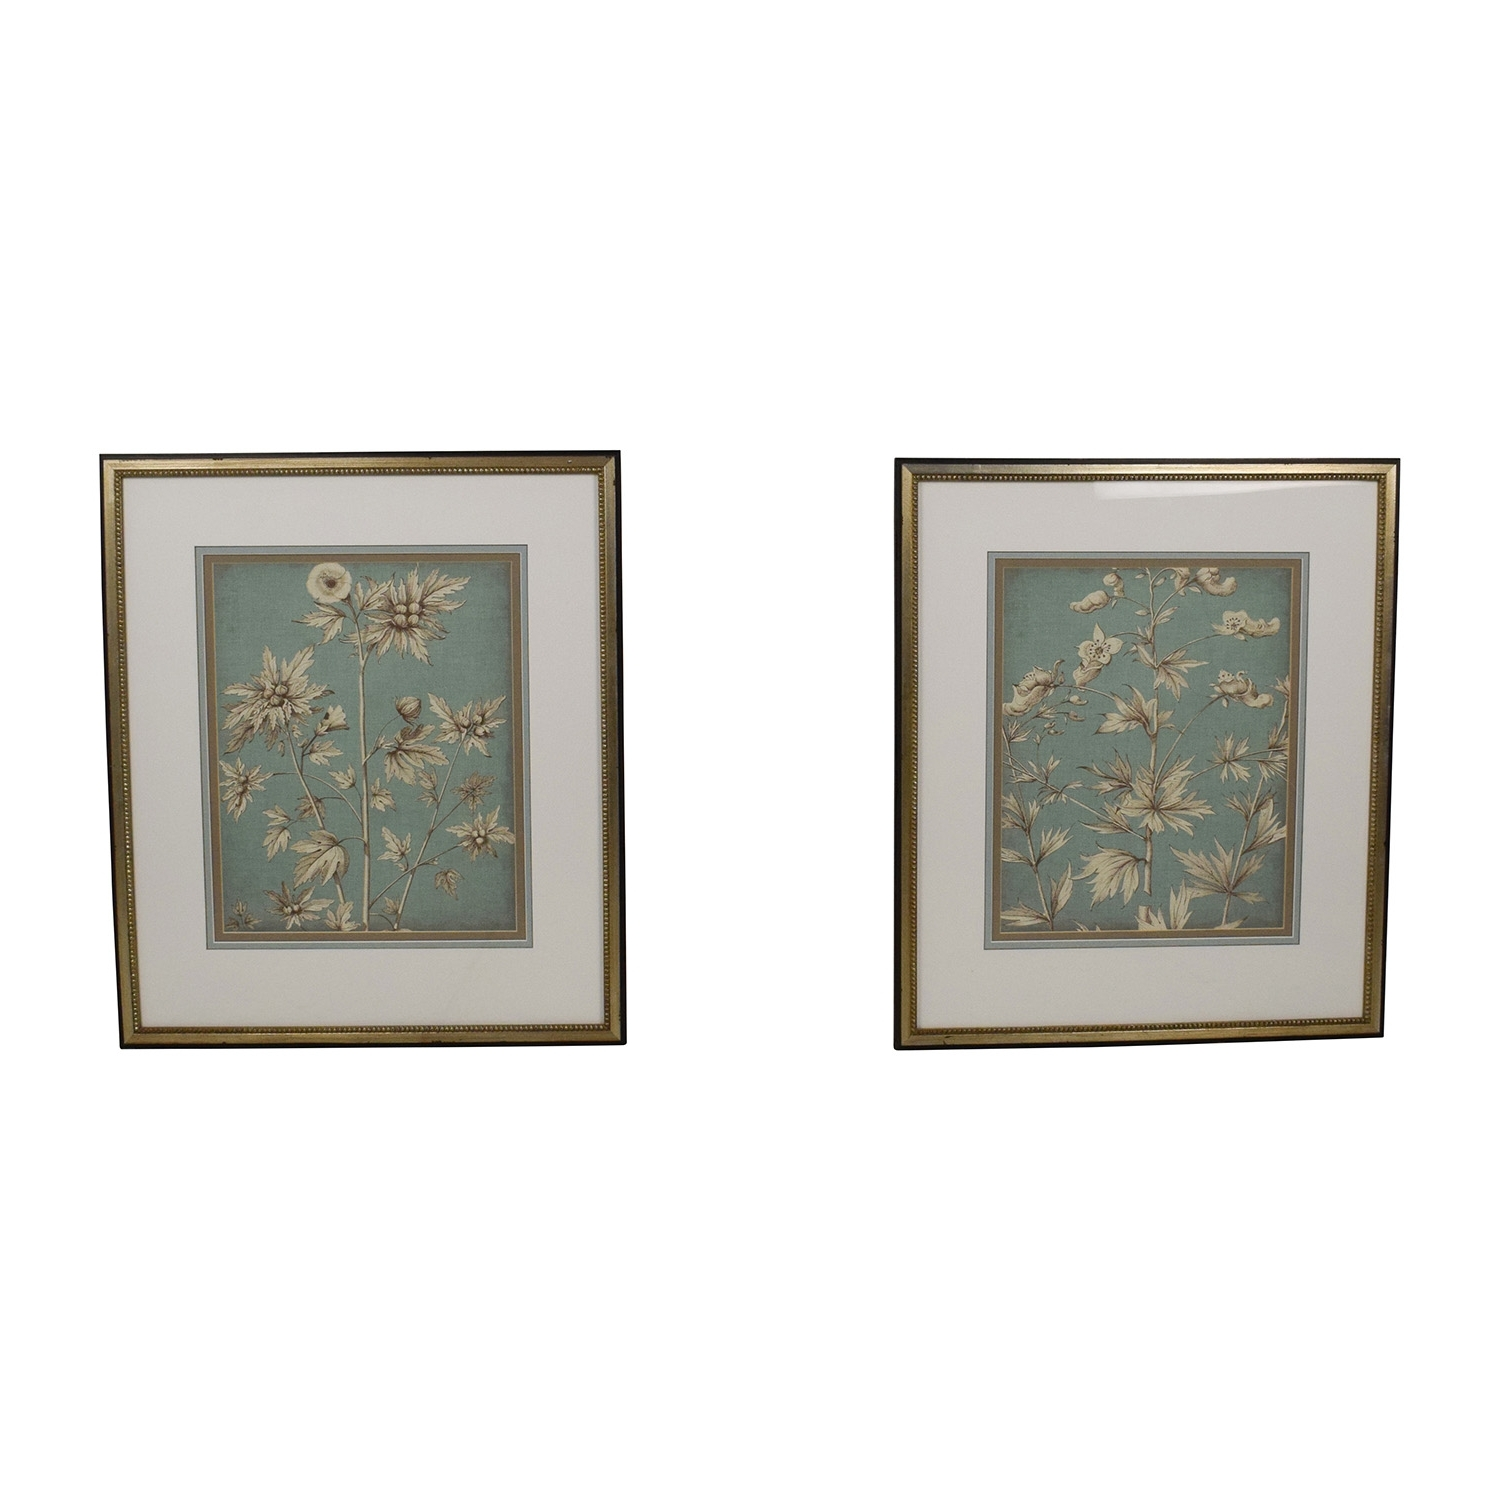 [%72% Off – Ethan Allen Ethan Allen Pair Of Decorative Floral Pertaining To Latest Ethan Allen Wall Art|Ethan Allen Wall Art Throughout Well Liked 72% Off – Ethan Allen Ethan Allen Pair Of Decorative Floral|Favorite Ethan Allen Wall Art Inside 72% Off – Ethan Allen Ethan Allen Pair Of Decorative Floral|Widely Used 72% Off – Ethan Allen Ethan Allen Pair Of Decorative Floral Pertaining To Ethan Allen Wall Art%] (View 1 of 15)